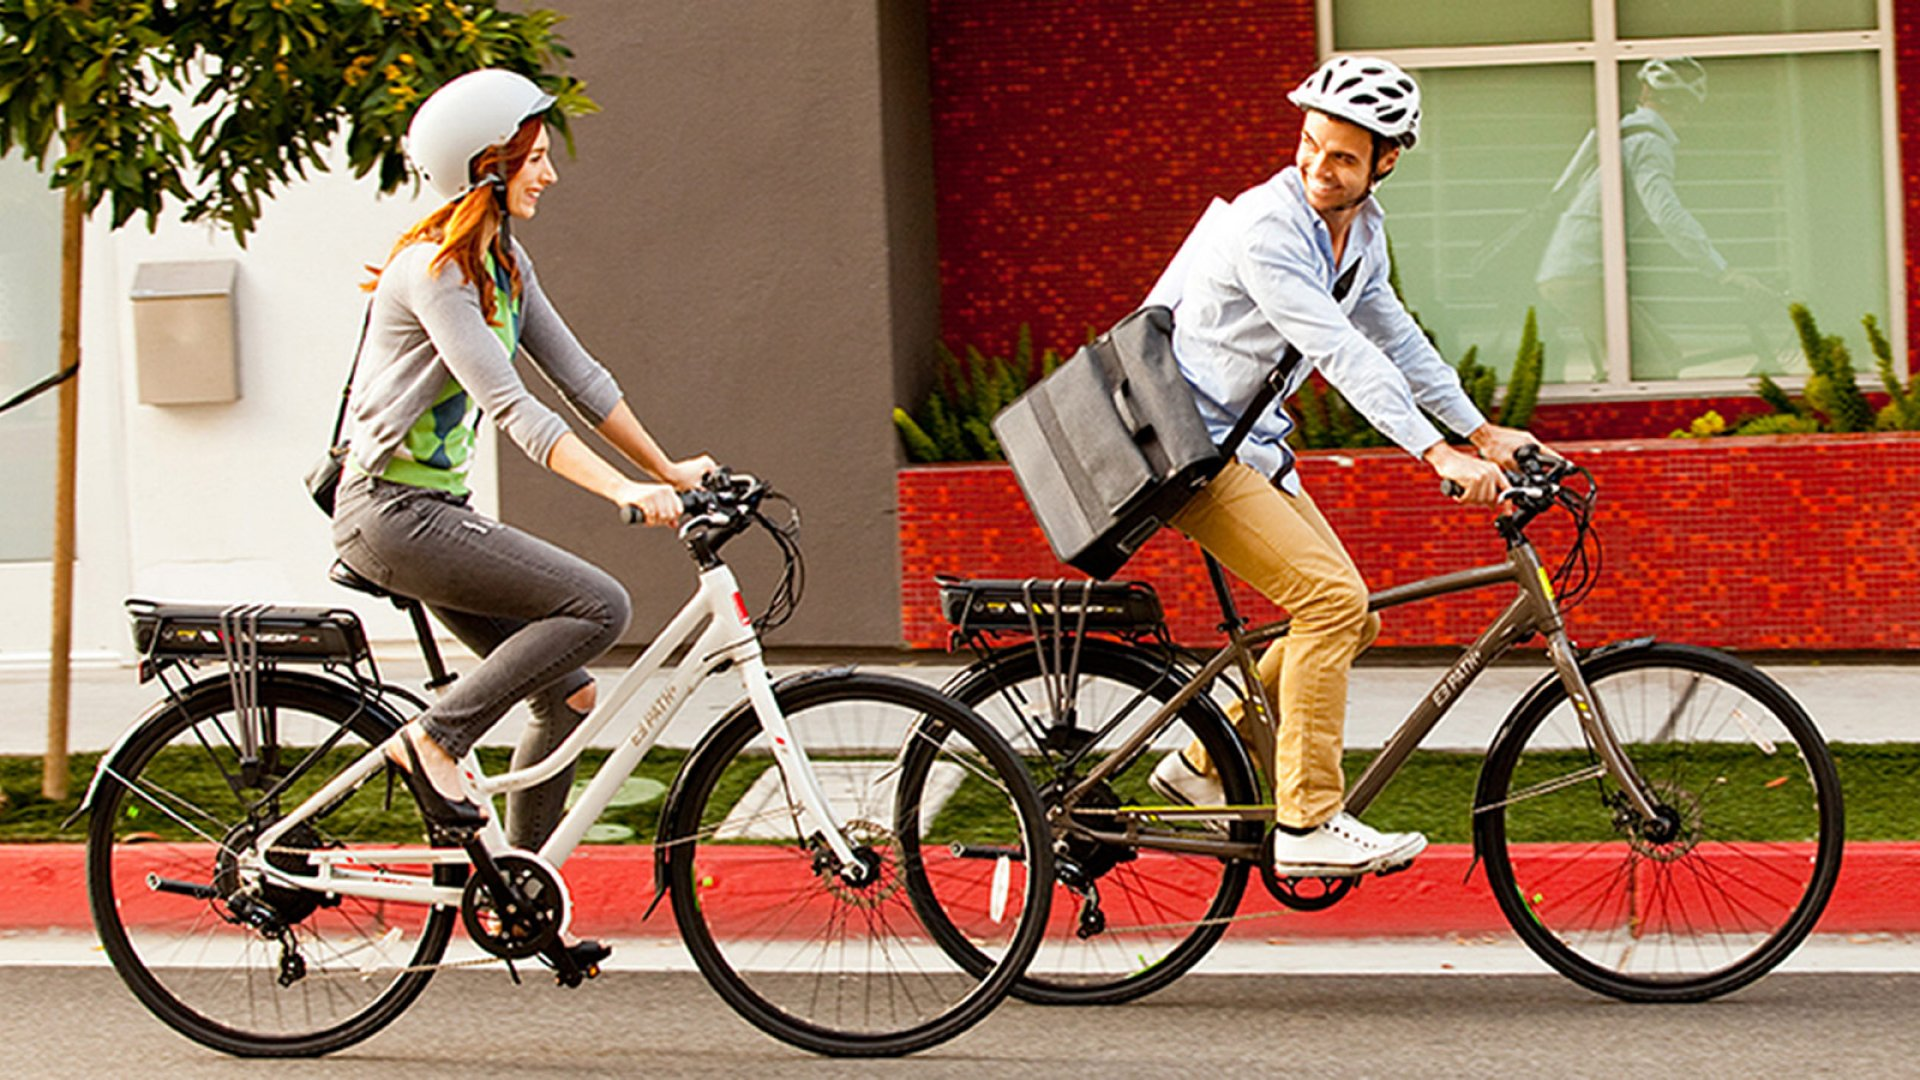 The iZIP E3 Path Plus is an electric bike with a range of 30-50 miles. It shows how tech can enable new paths.